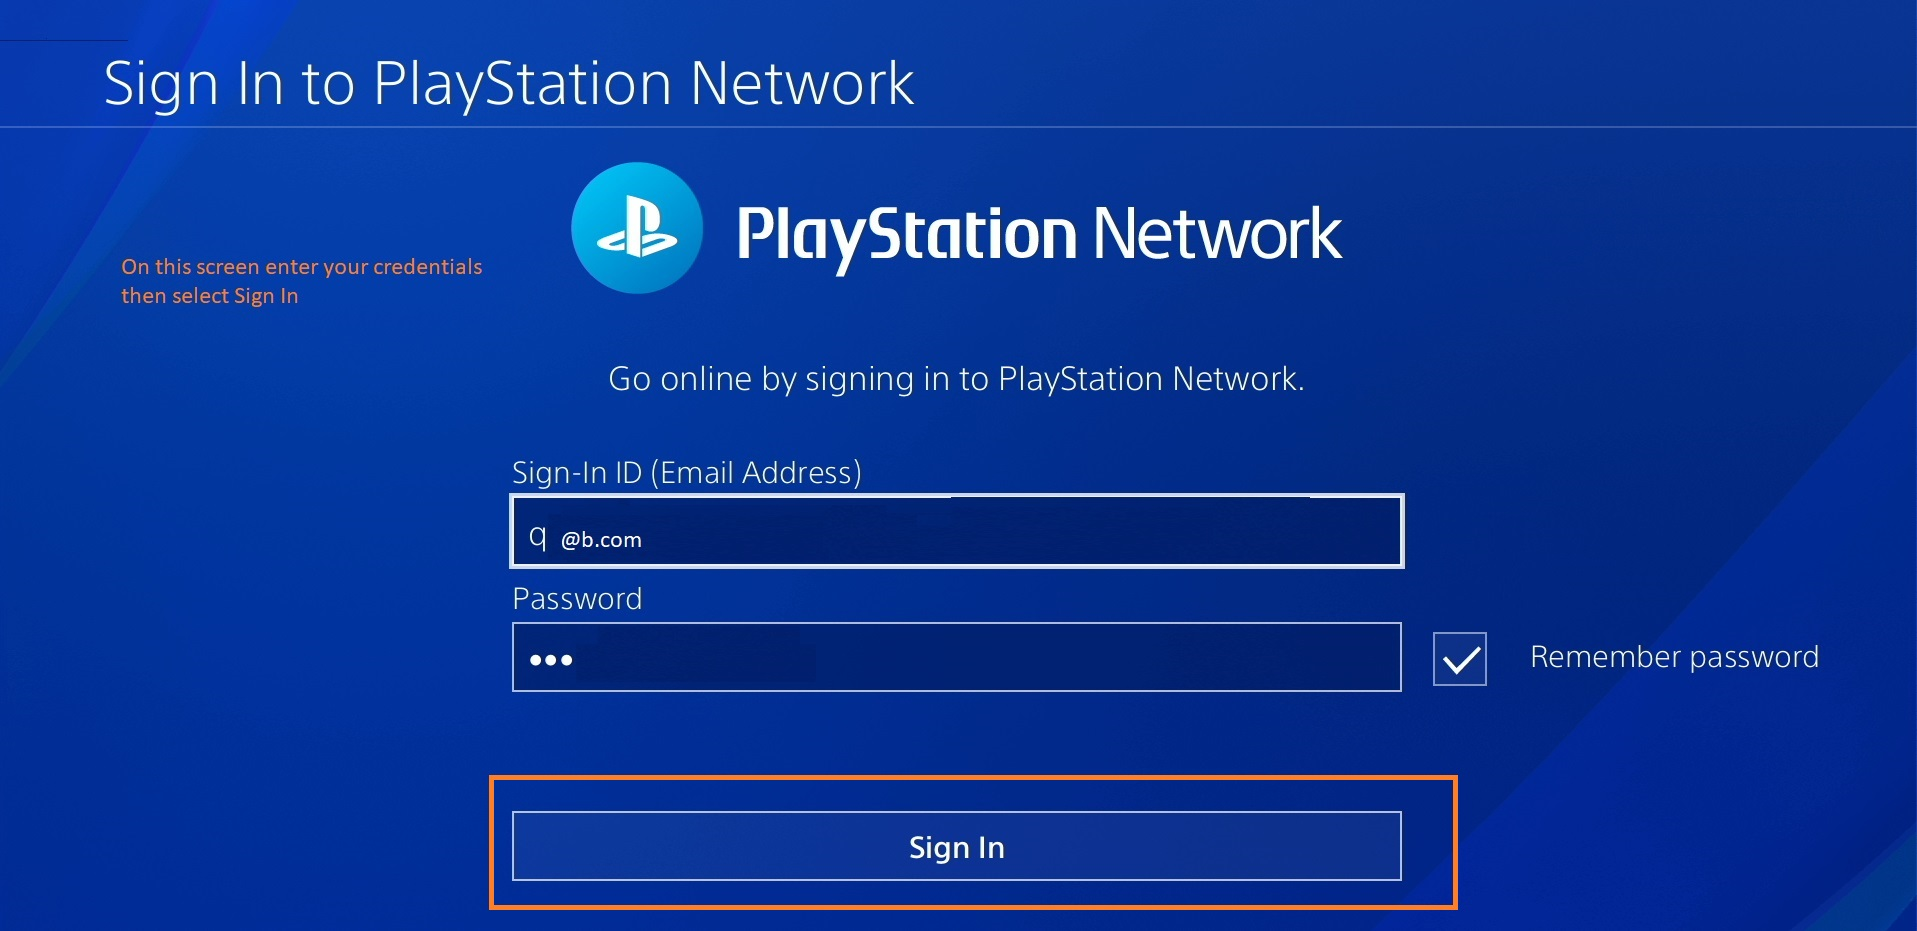 PS Network Sign In screen. Email address field, then password with checkbox at right to remember. Sign In button below.